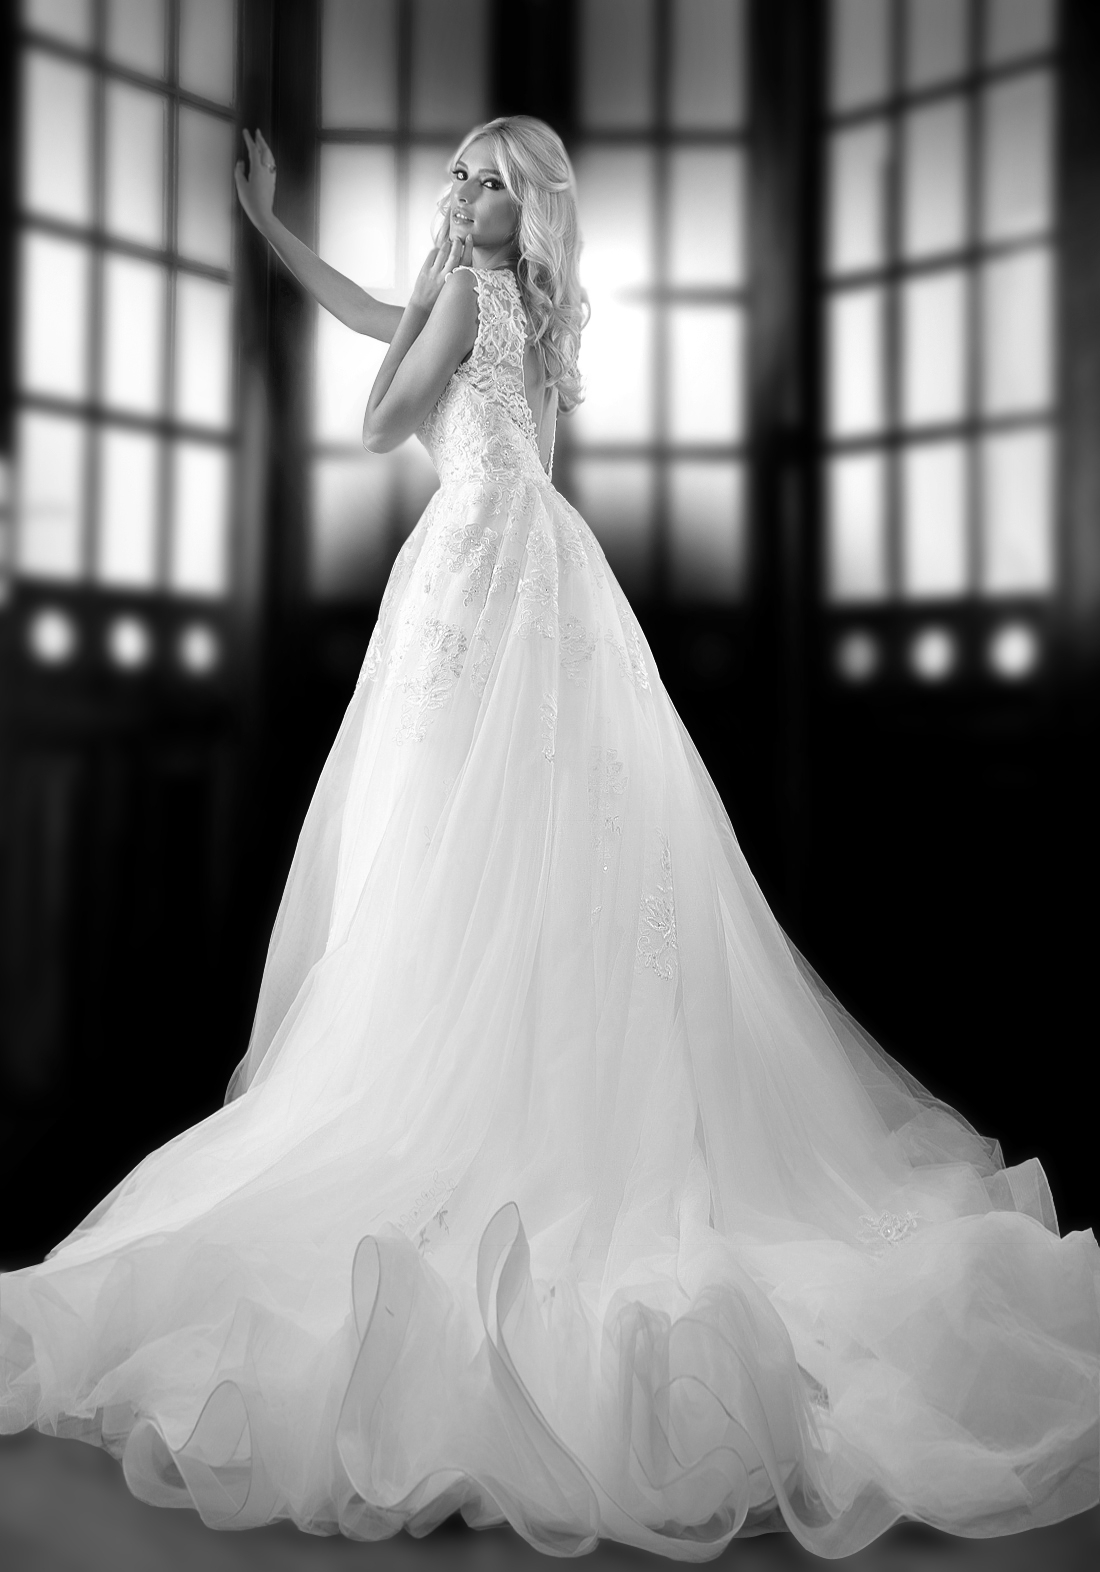 bien-savvy-wedding-dresses-2014-collection-32-01232014